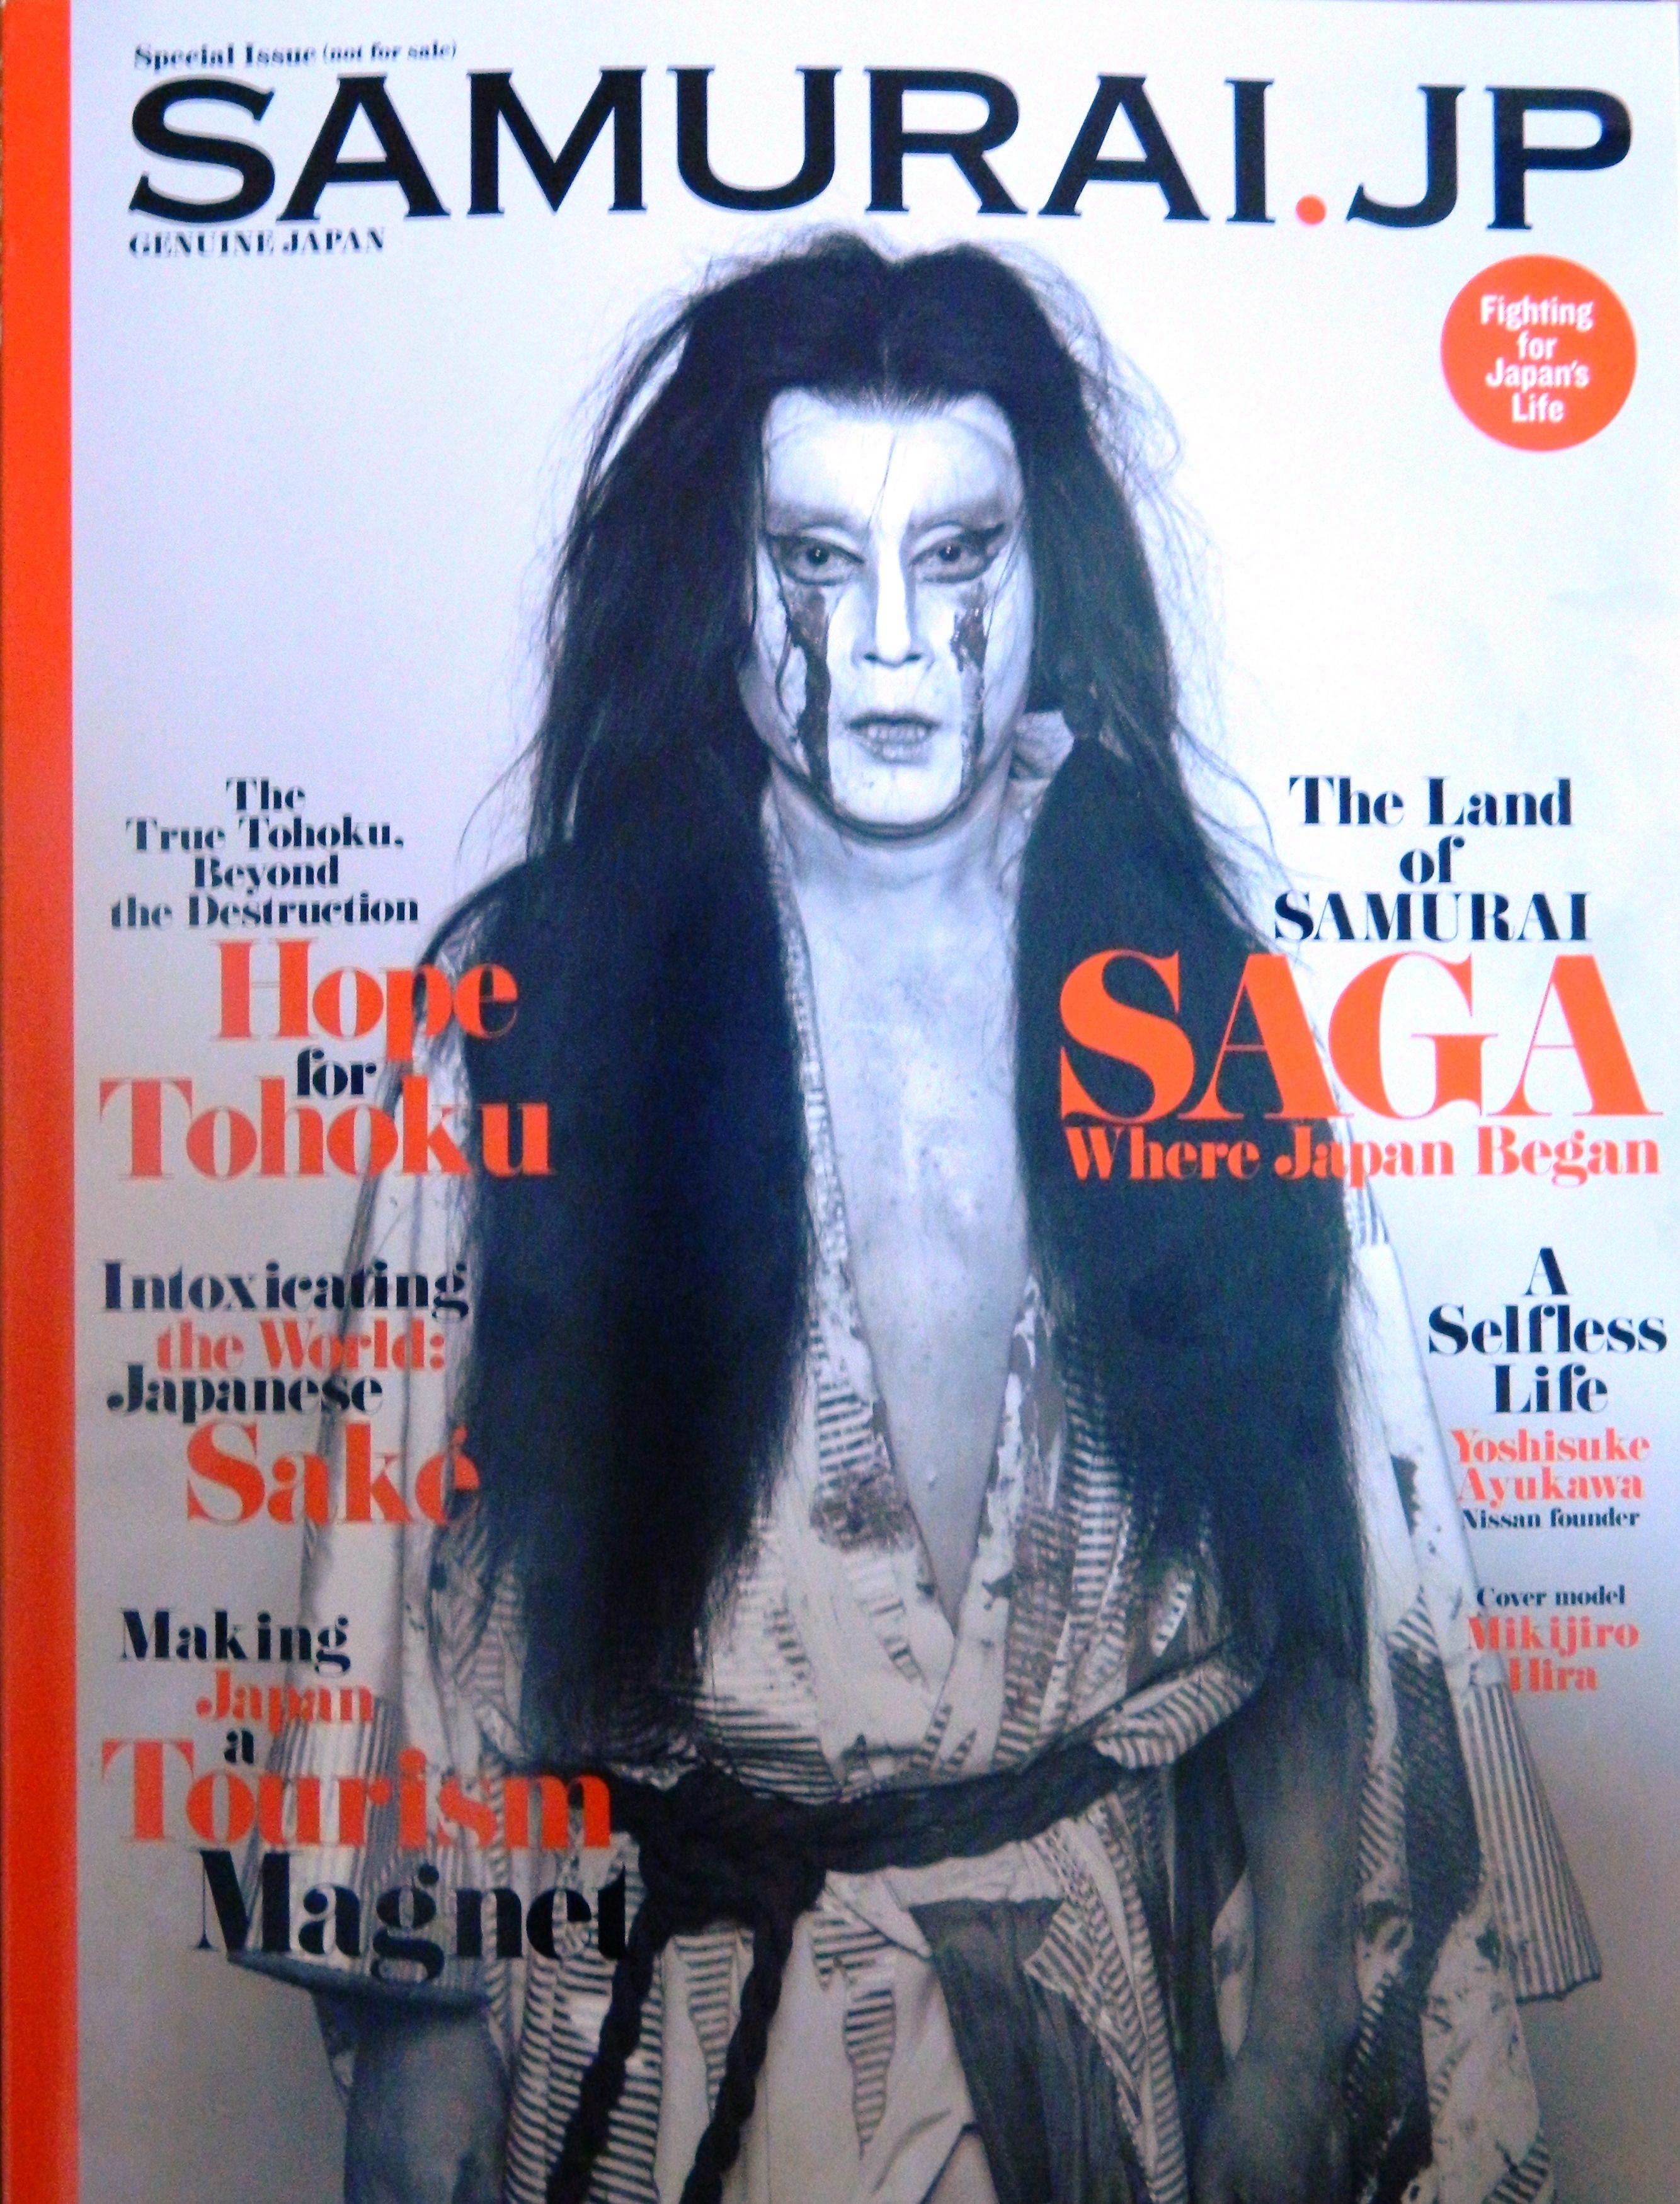 New magazine SAMURAI JP launches in search of Japan's lost values